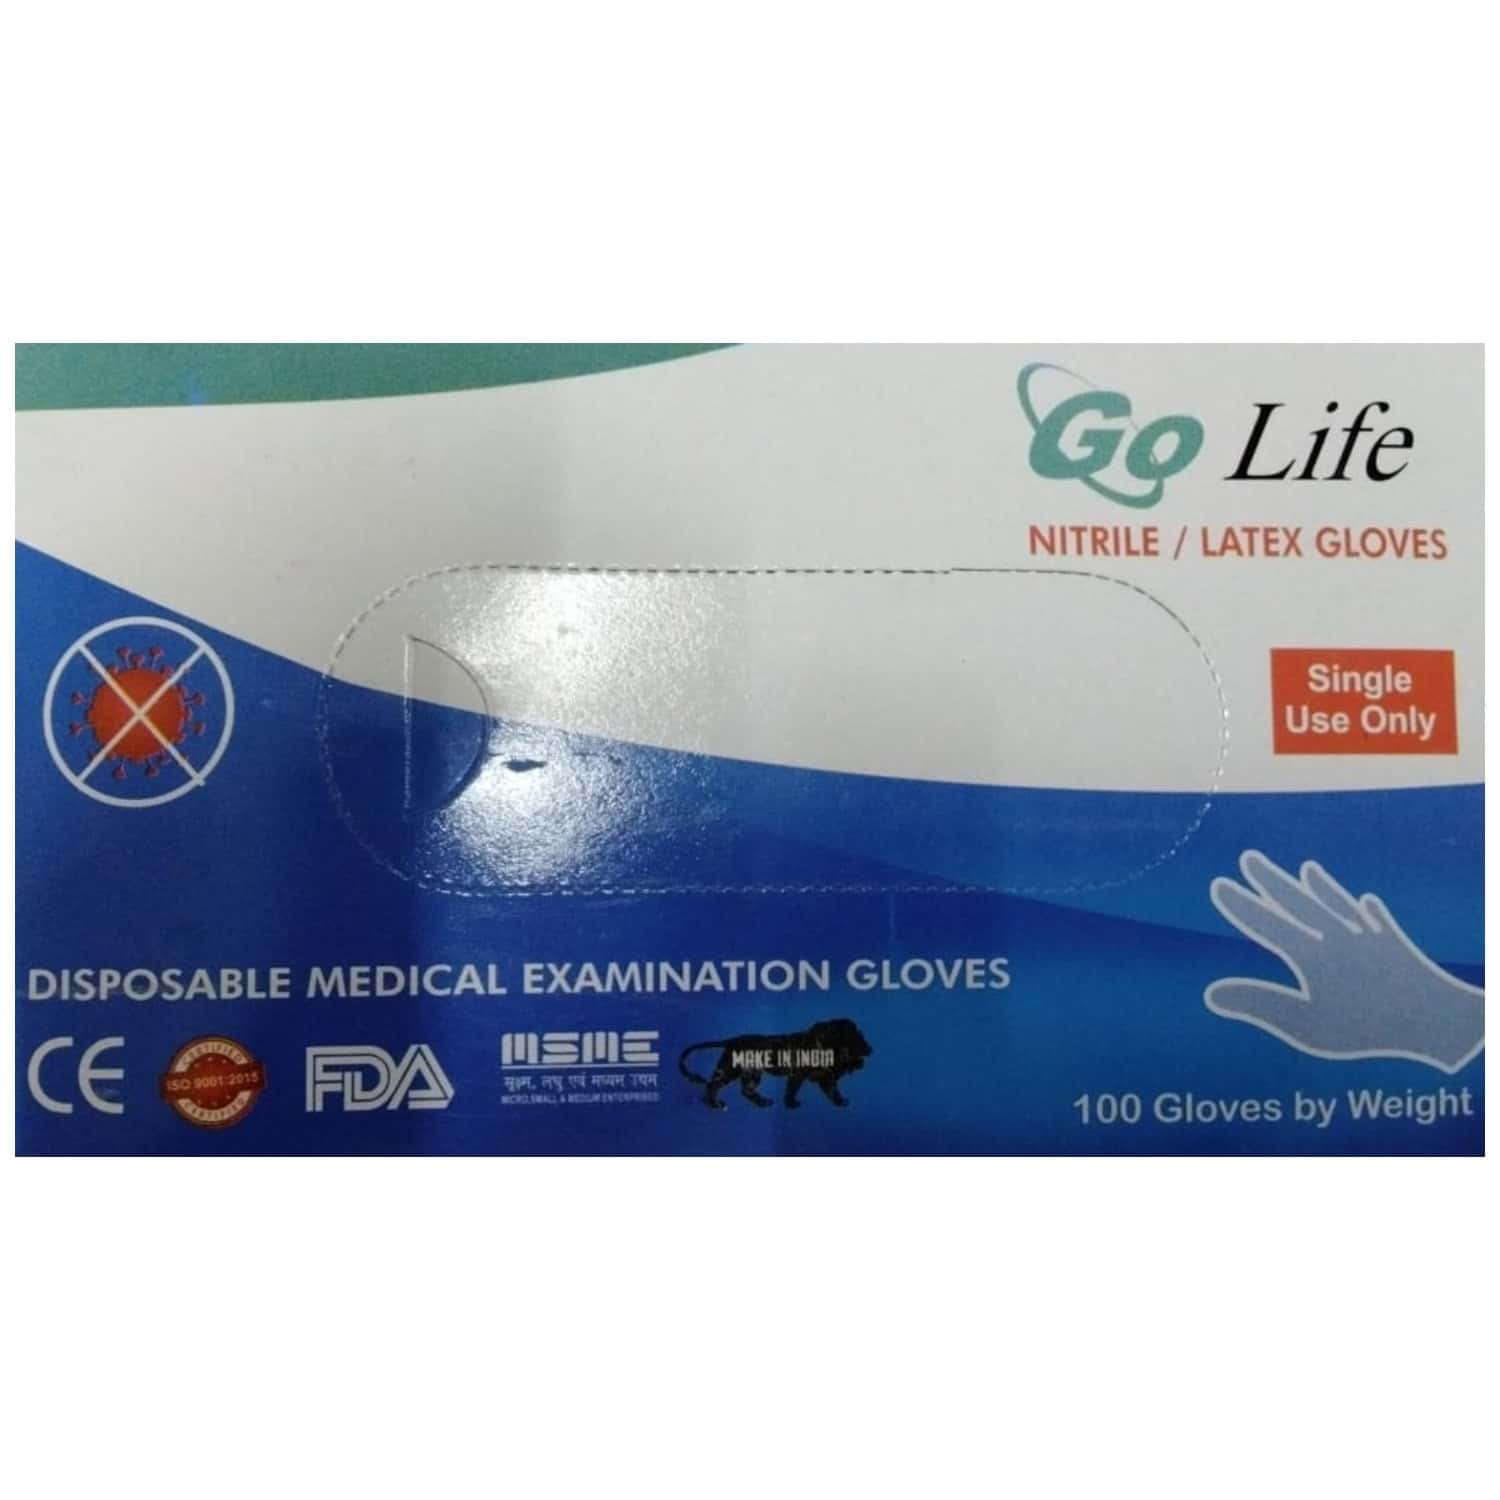 Go Life Disposable Medical Examination Gloves - 100's